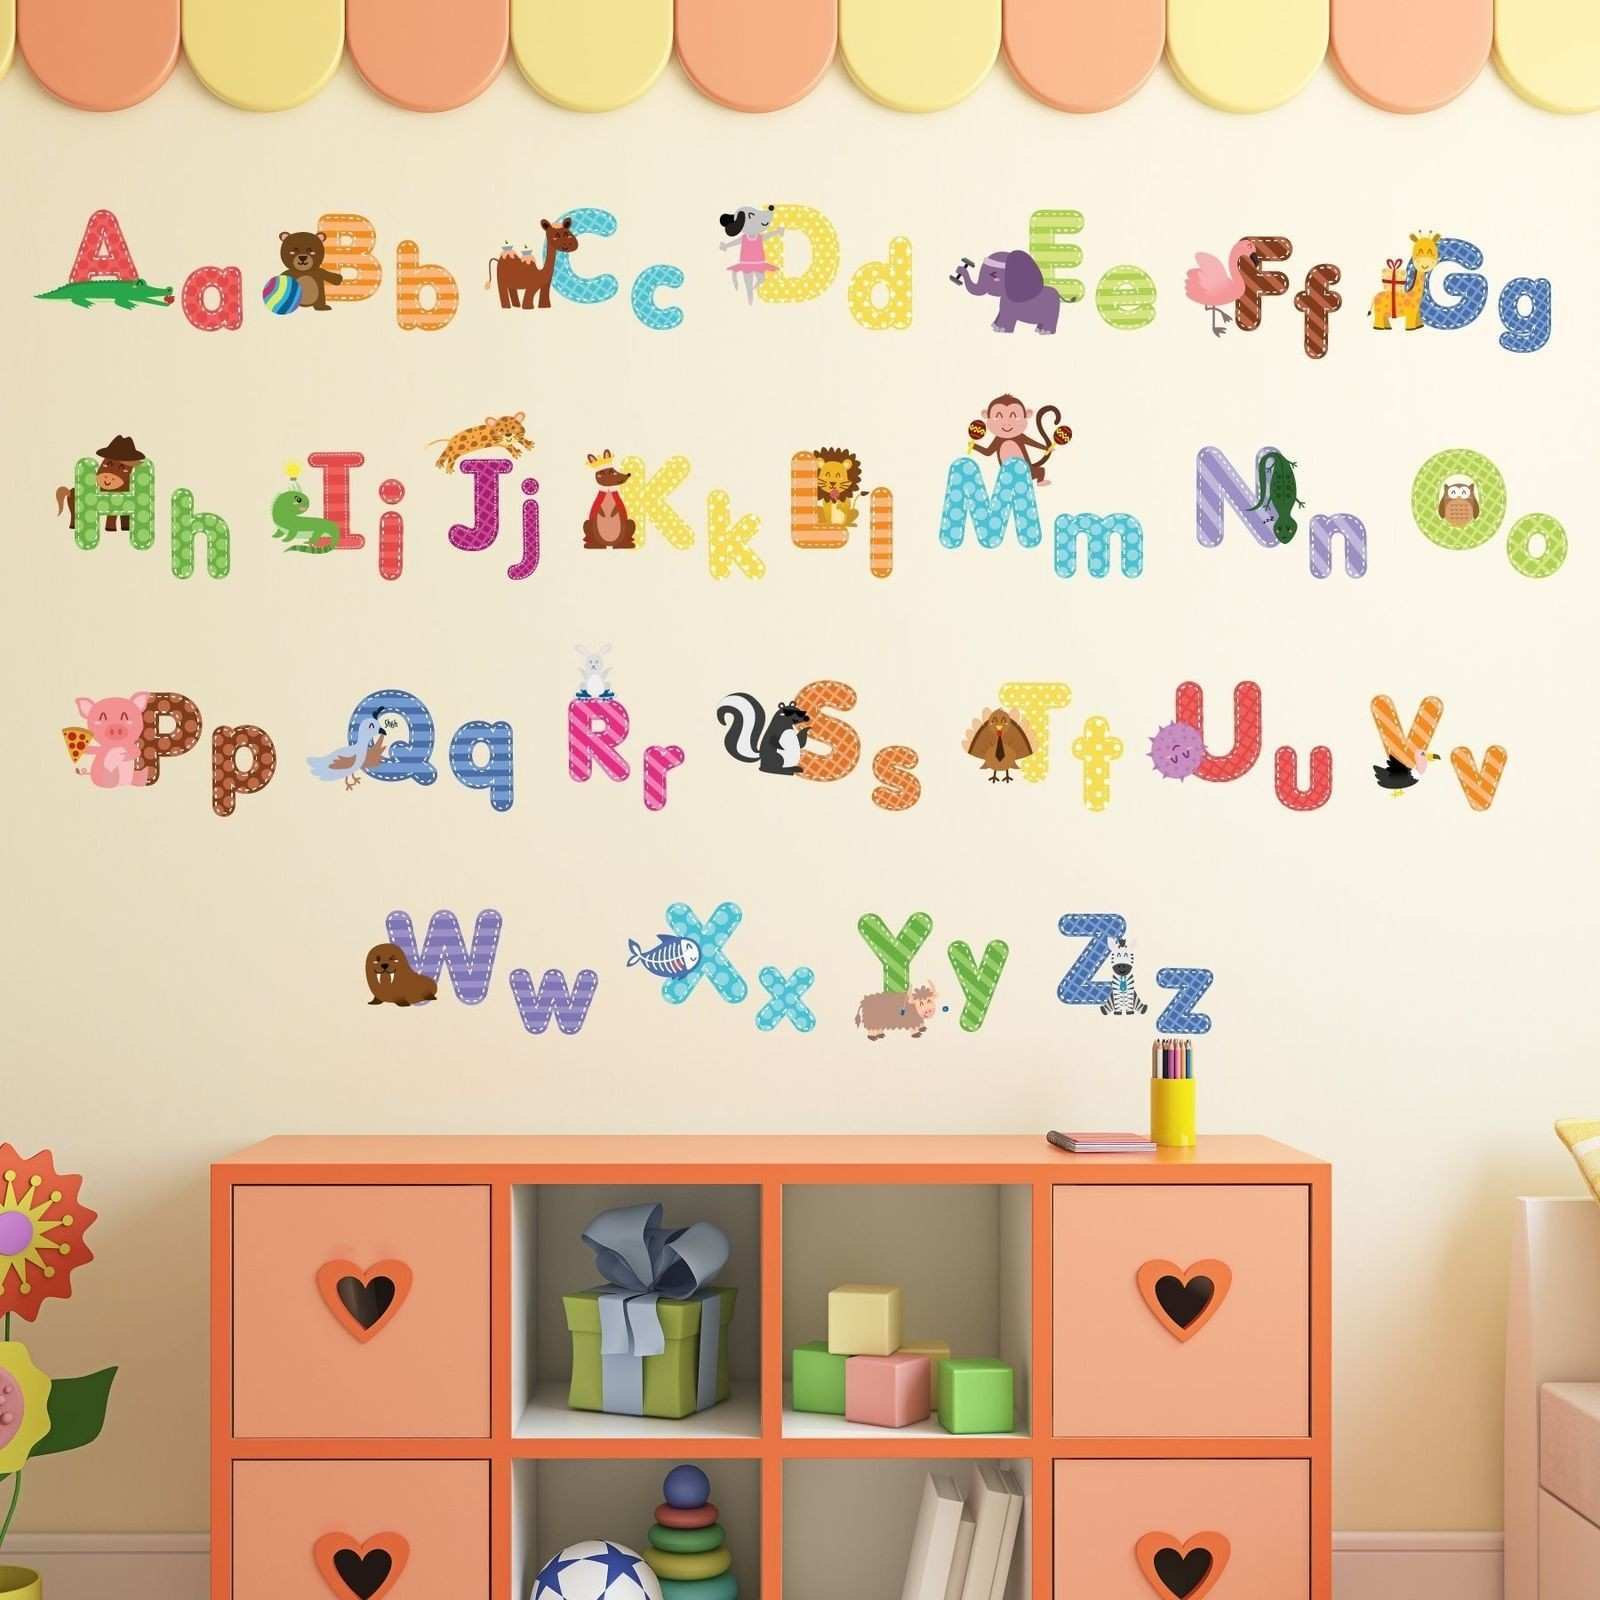 Animal Alphabet Wall Decals Baby and Toddler Decor Fun ABC Stickers